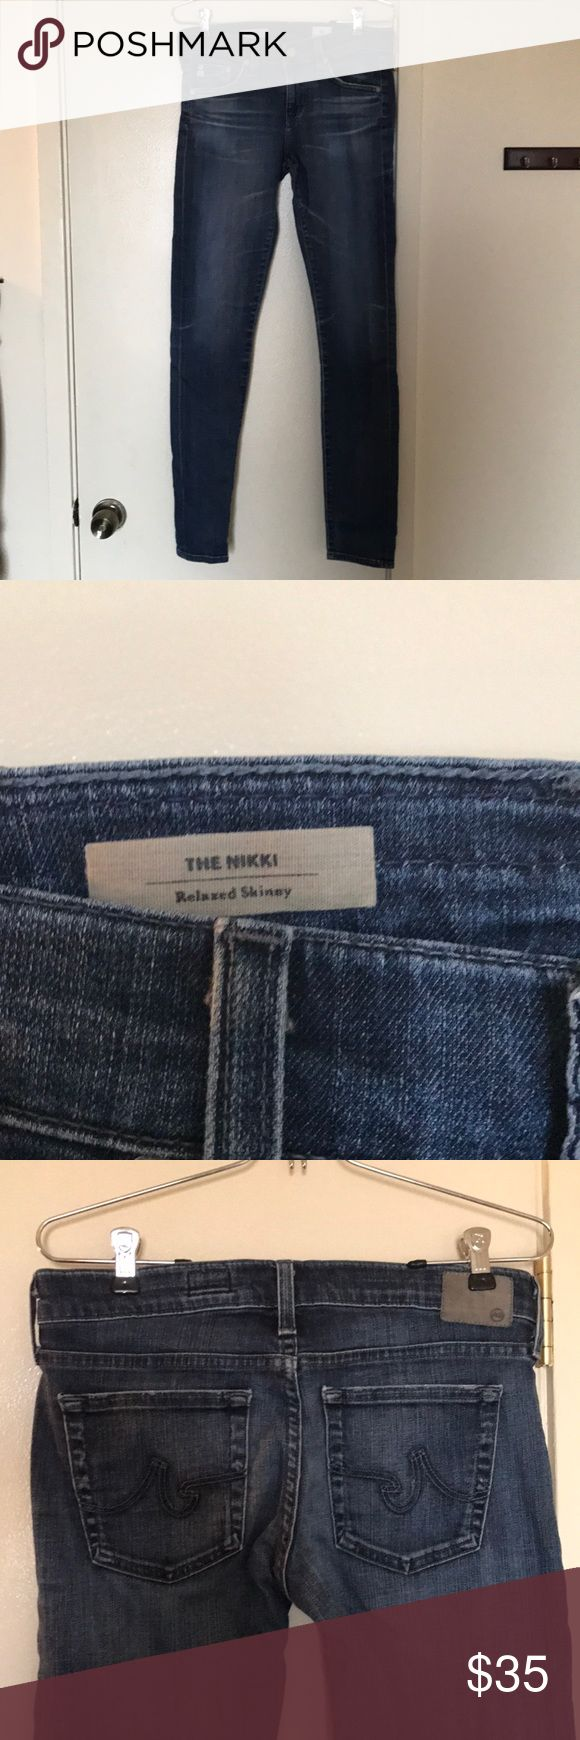 AG Adriano Goldschmied Nikki Relaxed Skinny SZ 27R AG Adriano Goldschmied Nikki Relaxed Skinny SZ 27R. Bery comfortable jeans- easy to dress up or down. Ag Adriano Goldschmied Jeans Skinny